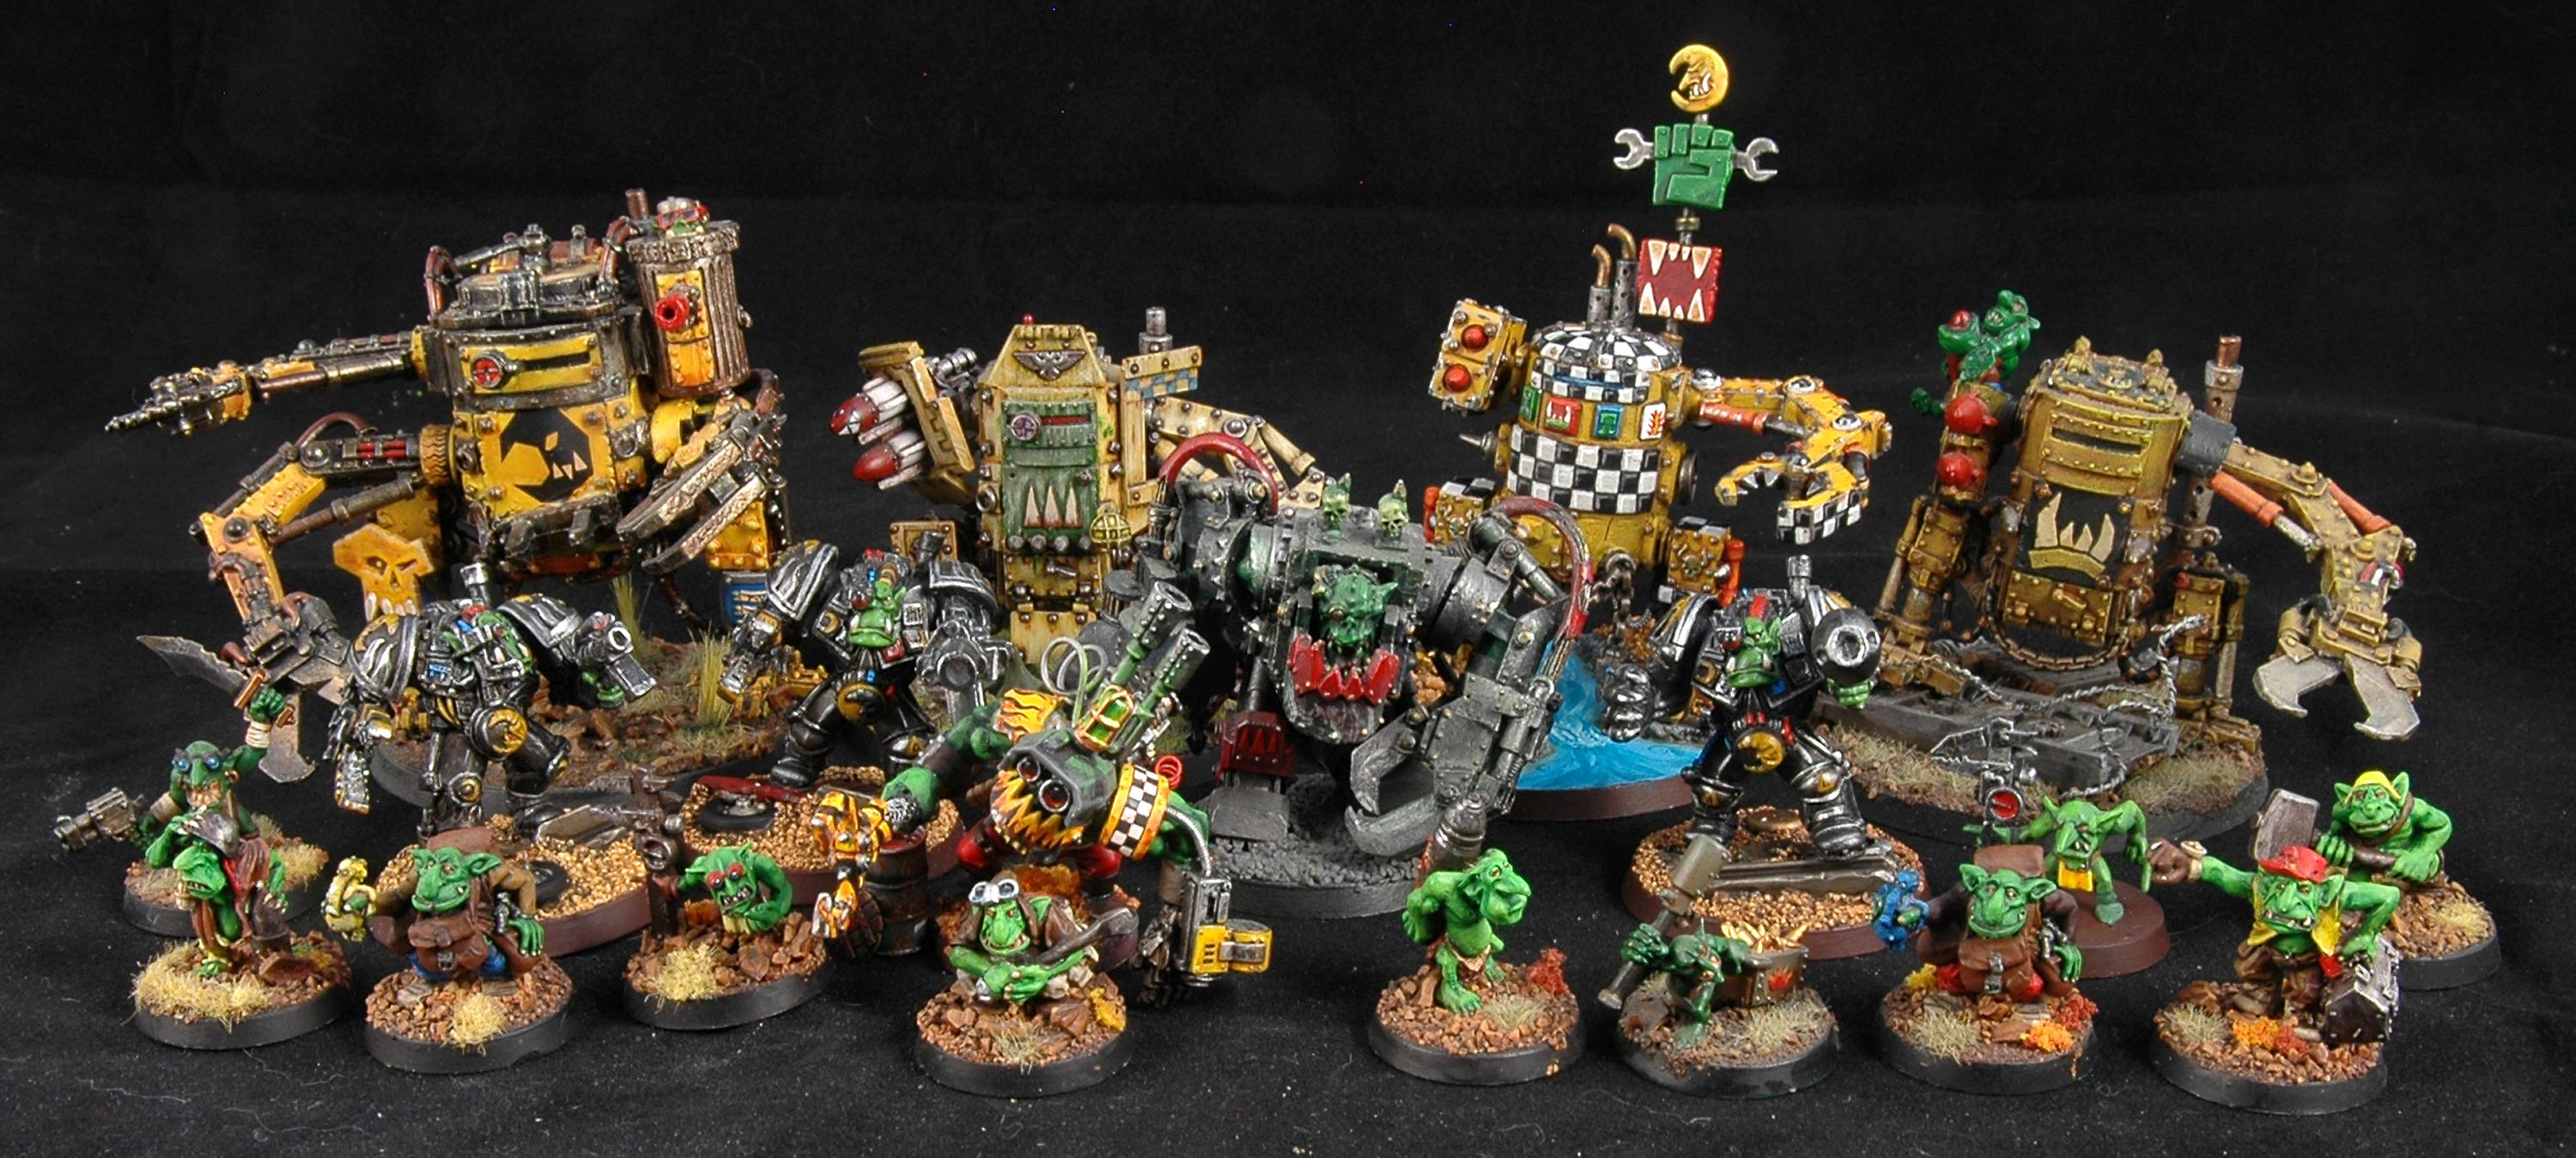 500 Pts, Army, Bad Moons, Orks, Warhammer 40,000